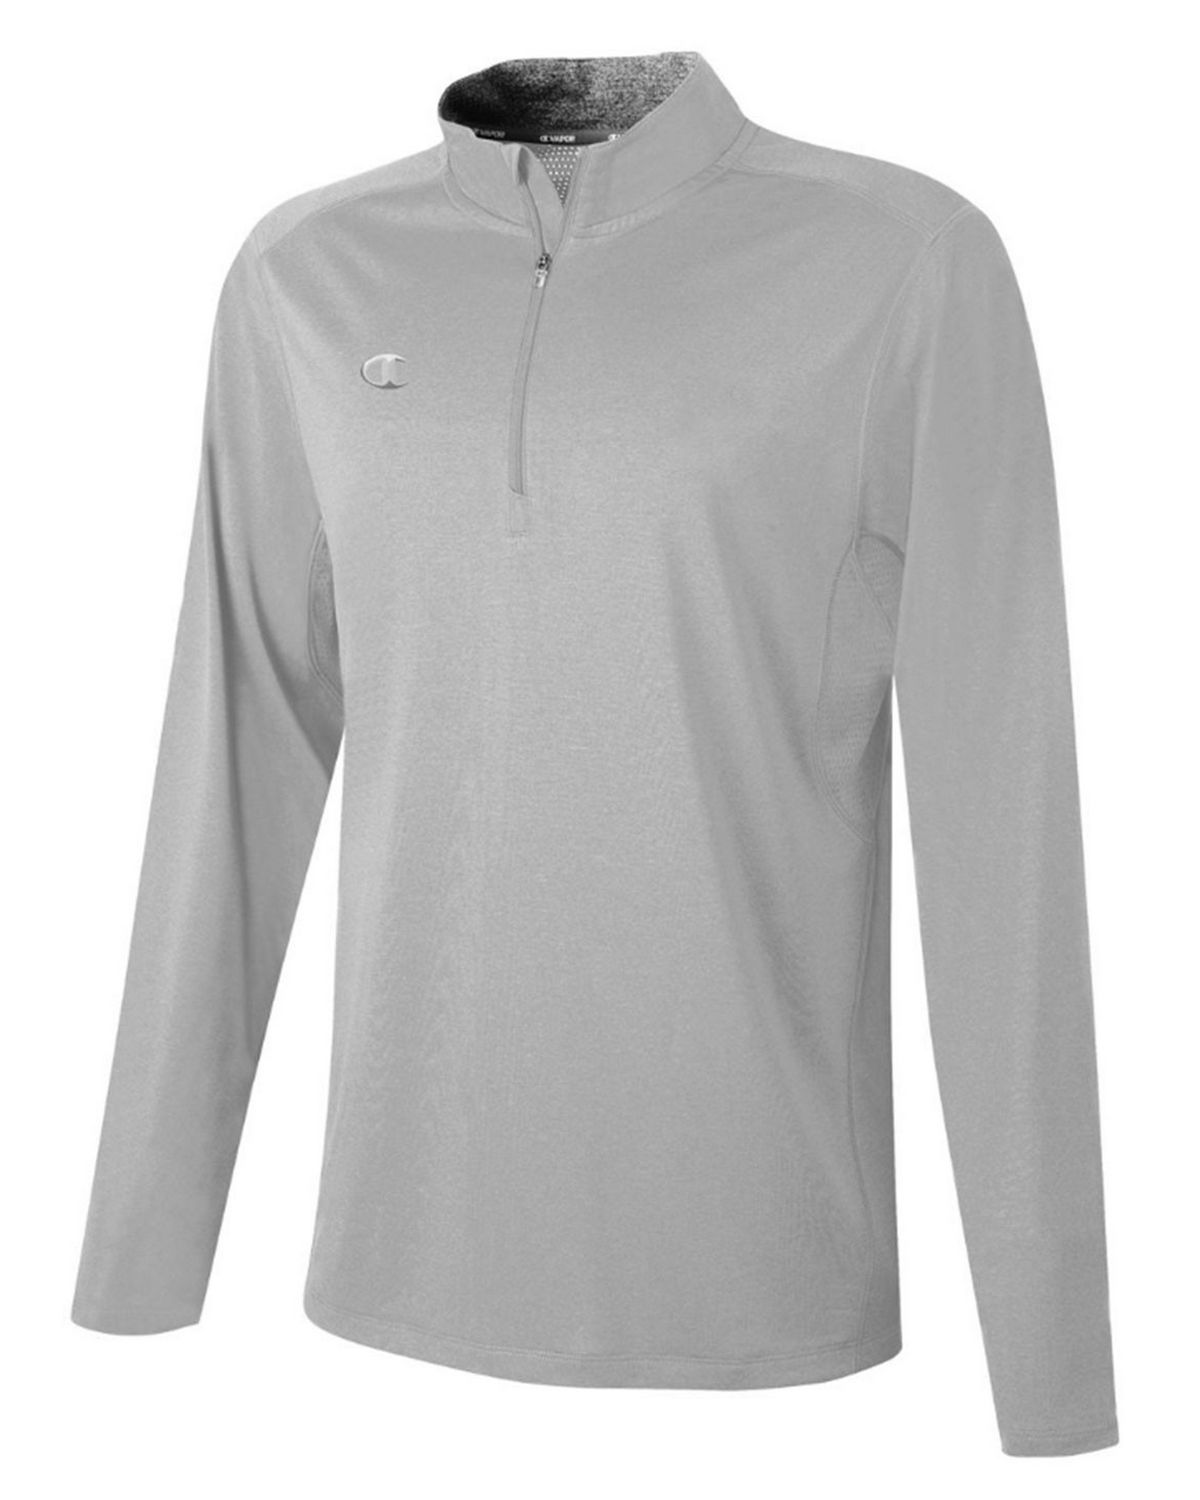 Champion CV80 Mens Vapor Pullover - Oxford Grey Heather - XL CV80